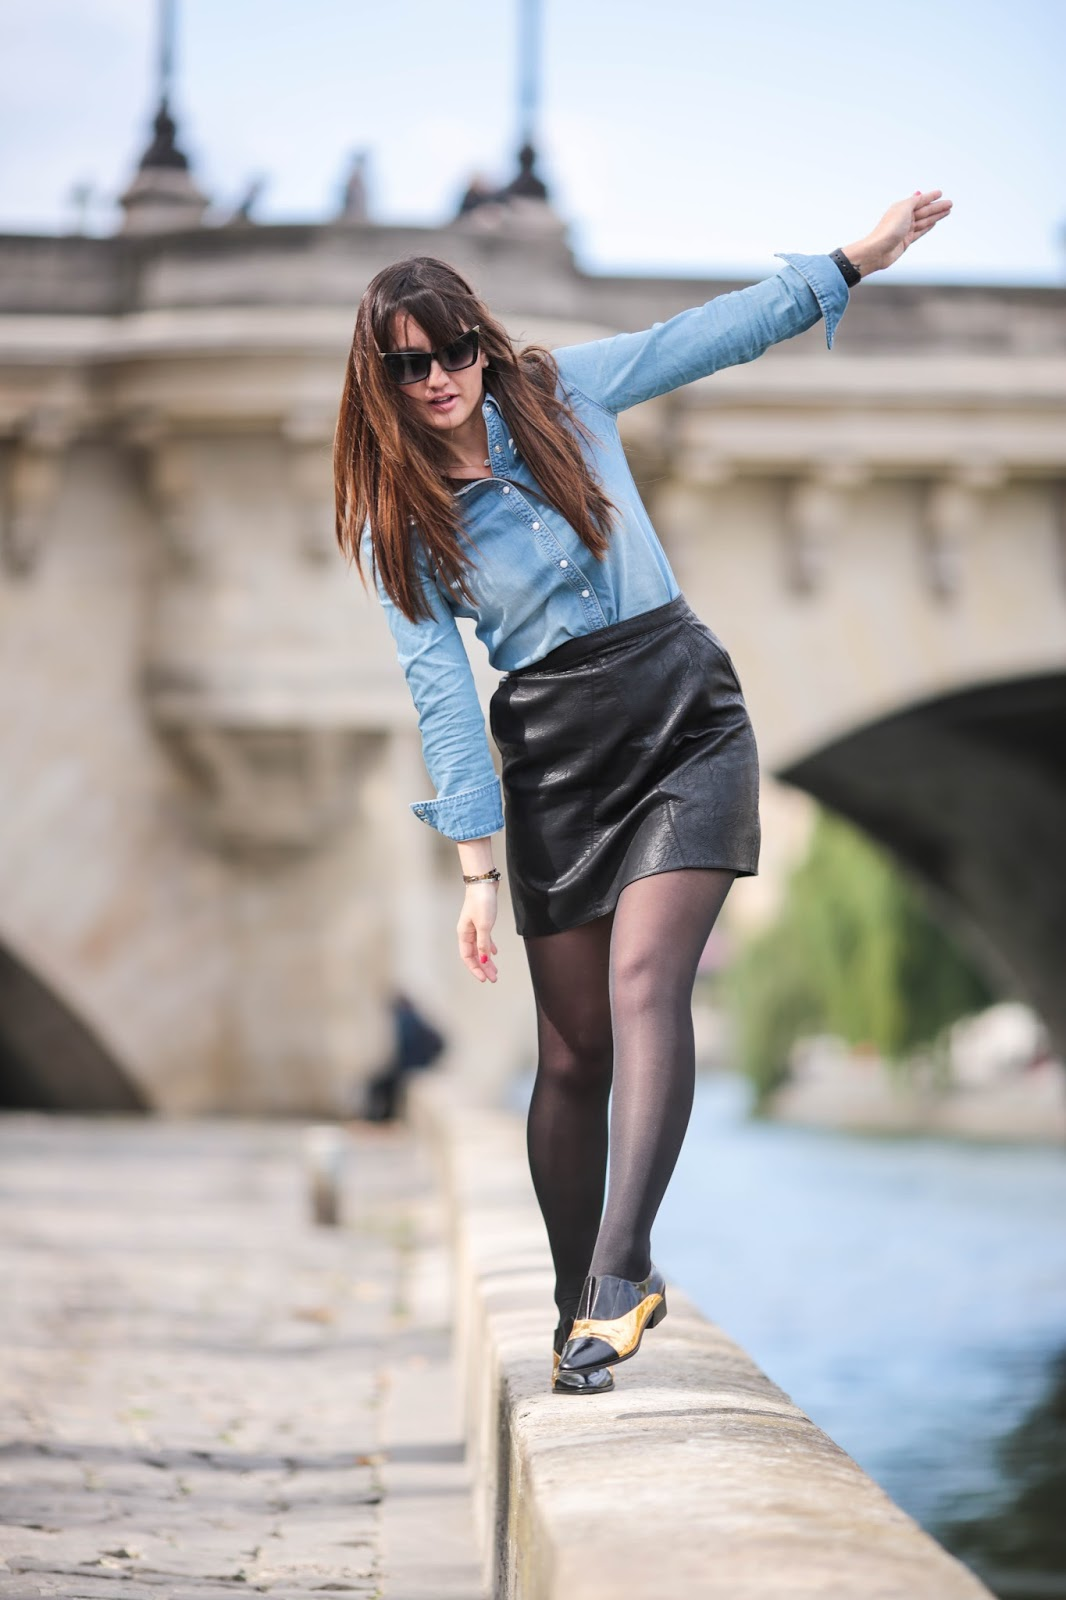 Blogger, Meet me in paree, Style, Look, Fashion, Streetstyle, Parisian style